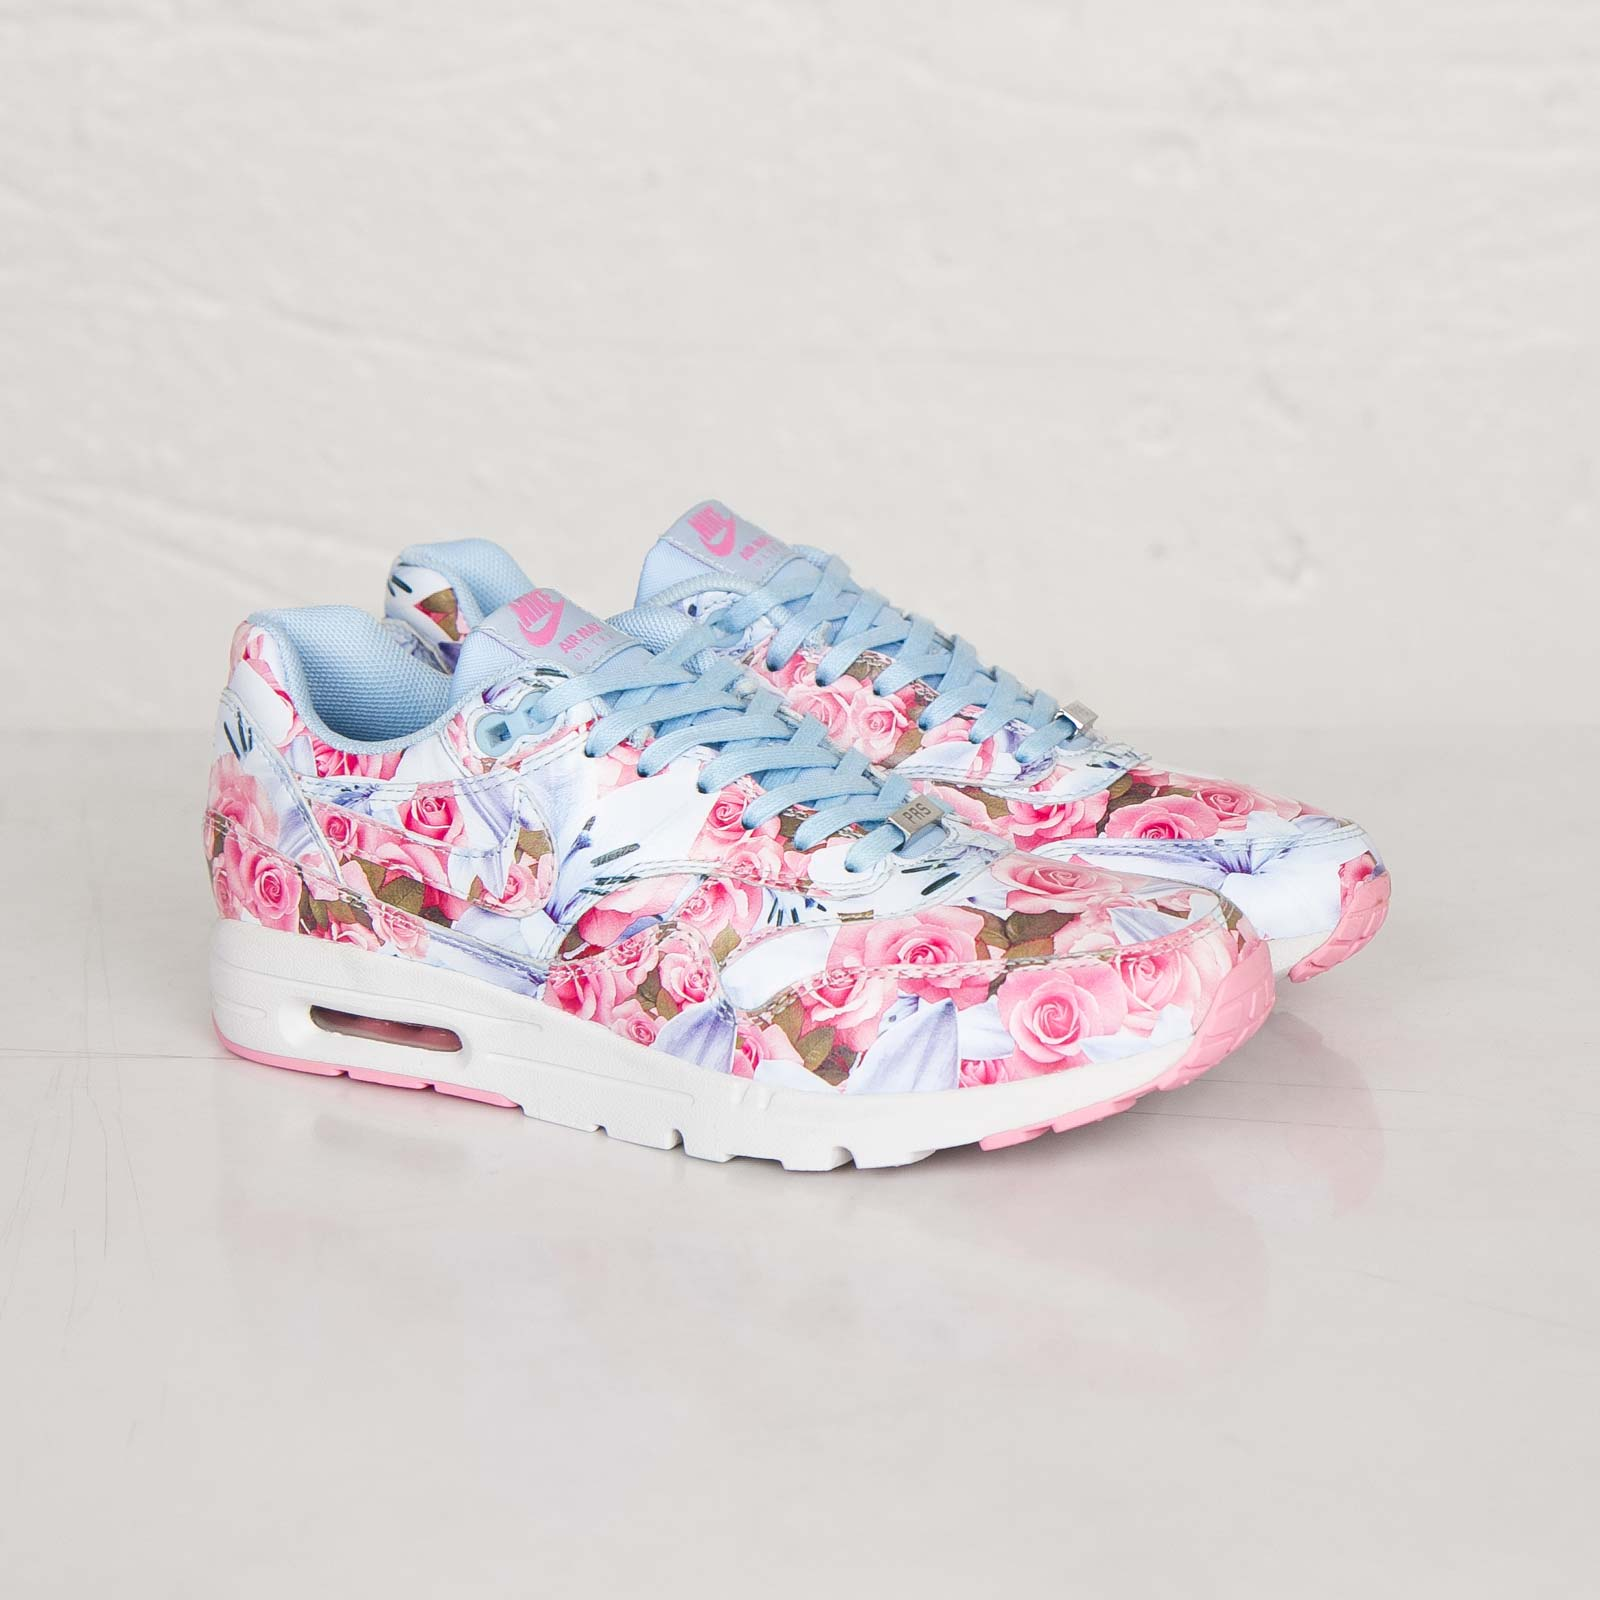 nike air max ultra lotc paris